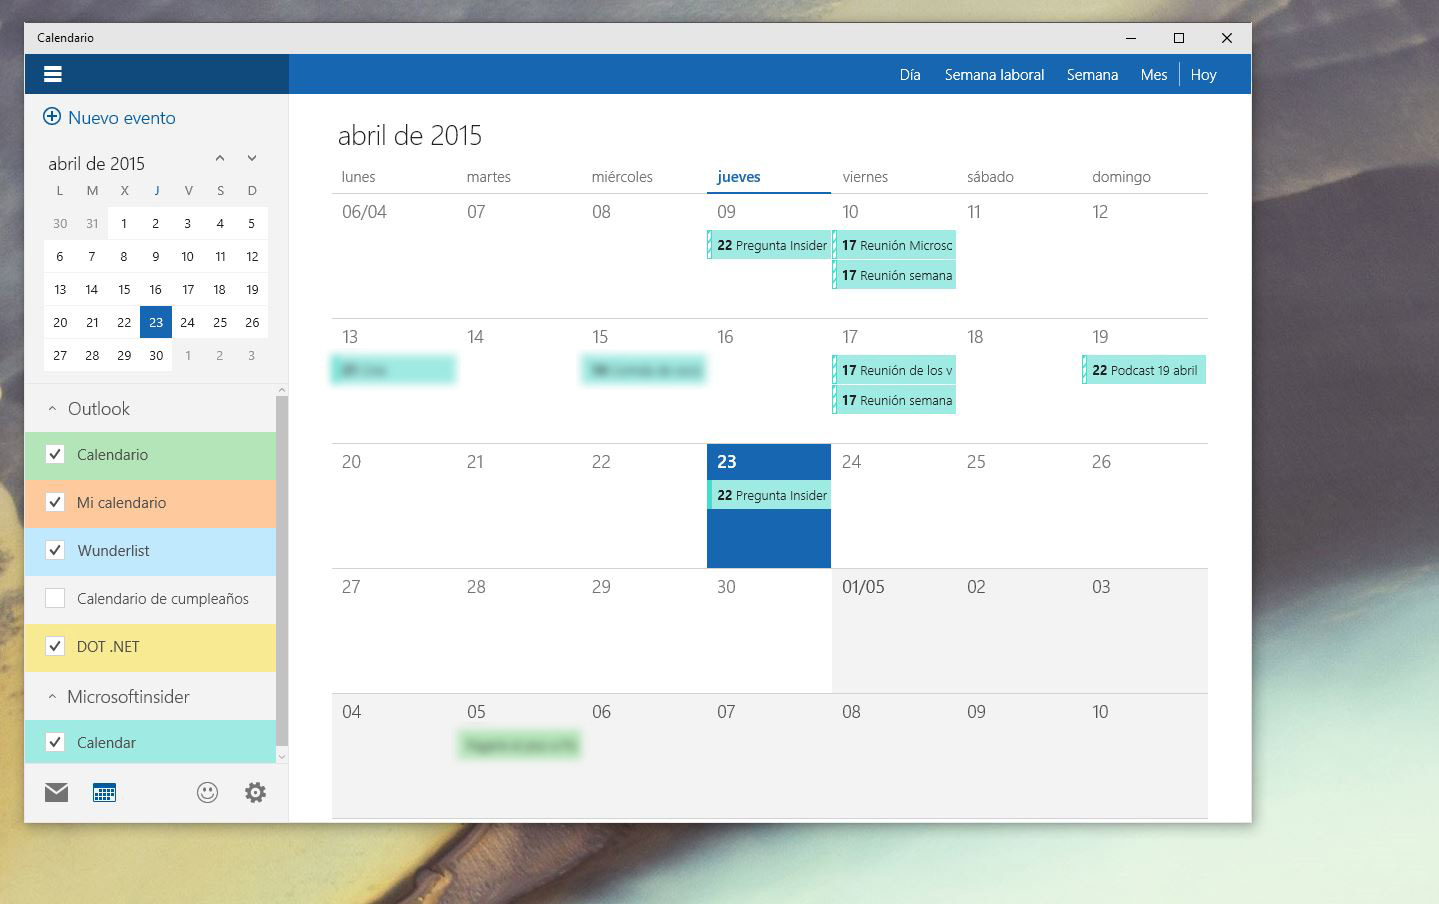 calendario-en-windows10